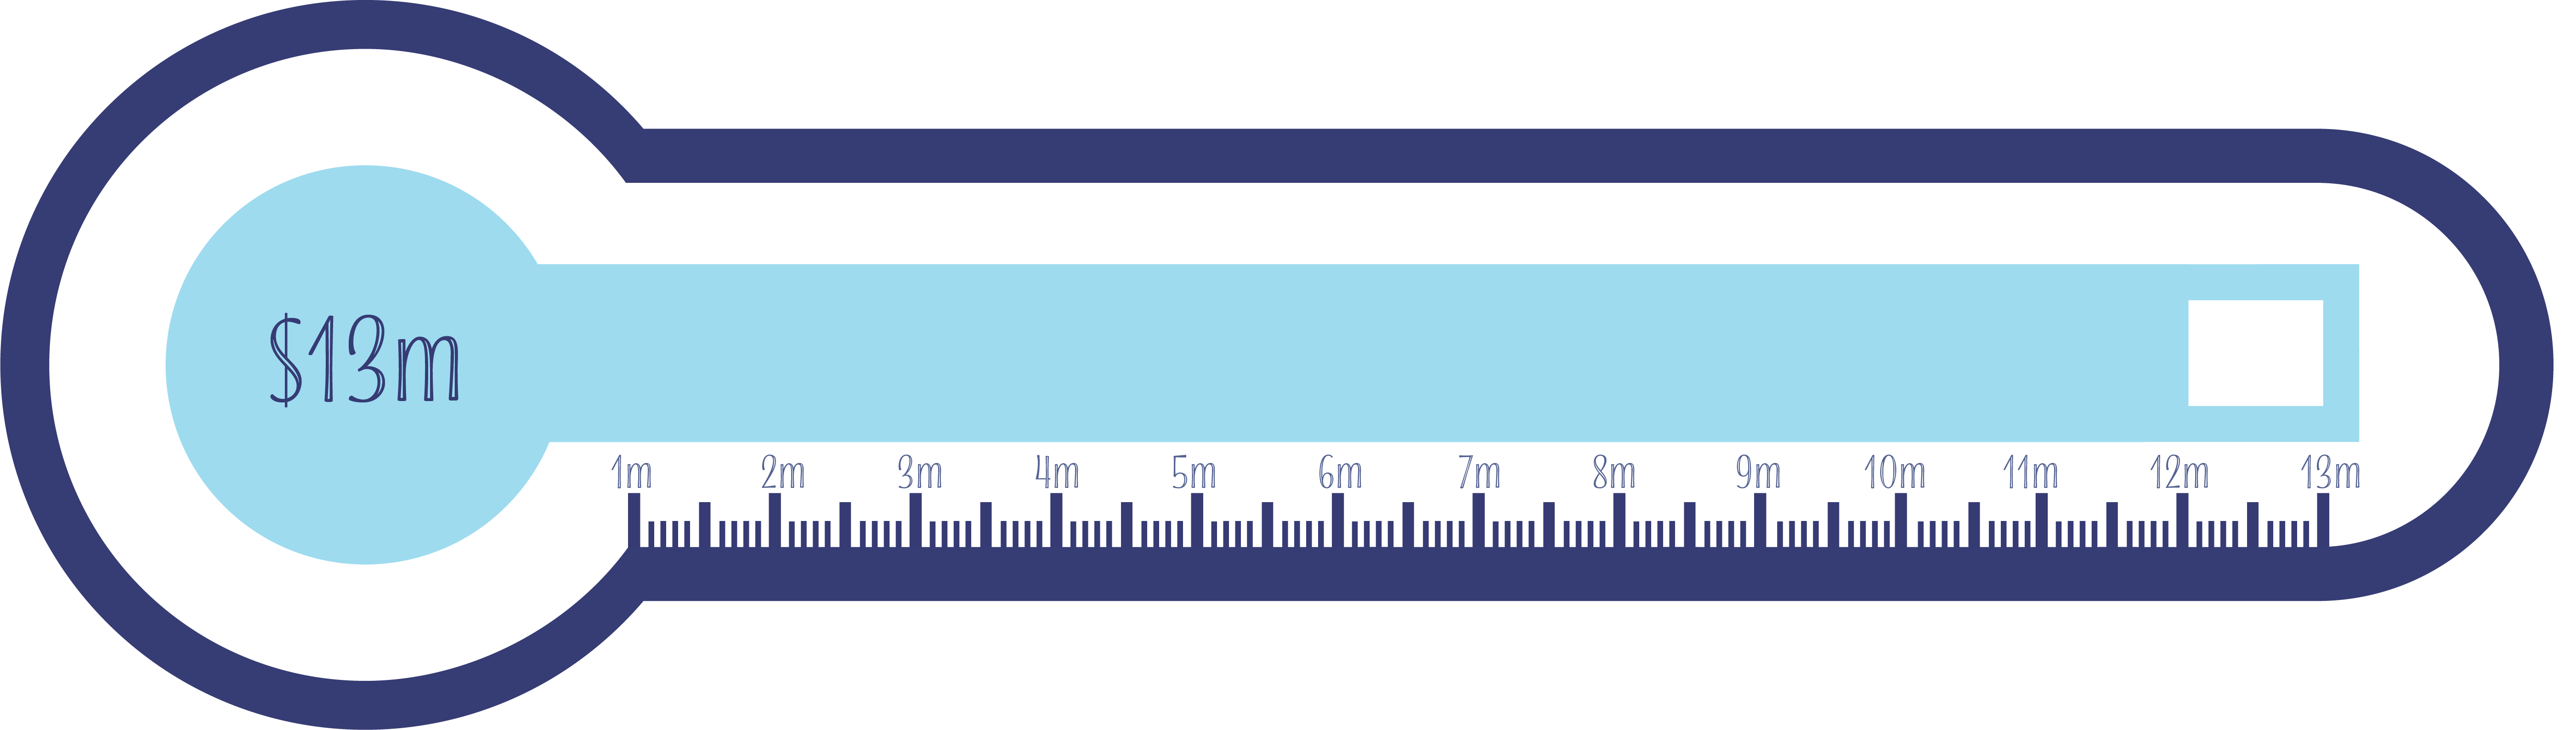 Dark purple and blue thermometer graphic that outlines the remaining funds needed for our new building. The thermometer is set for $13million and filled to $12 million